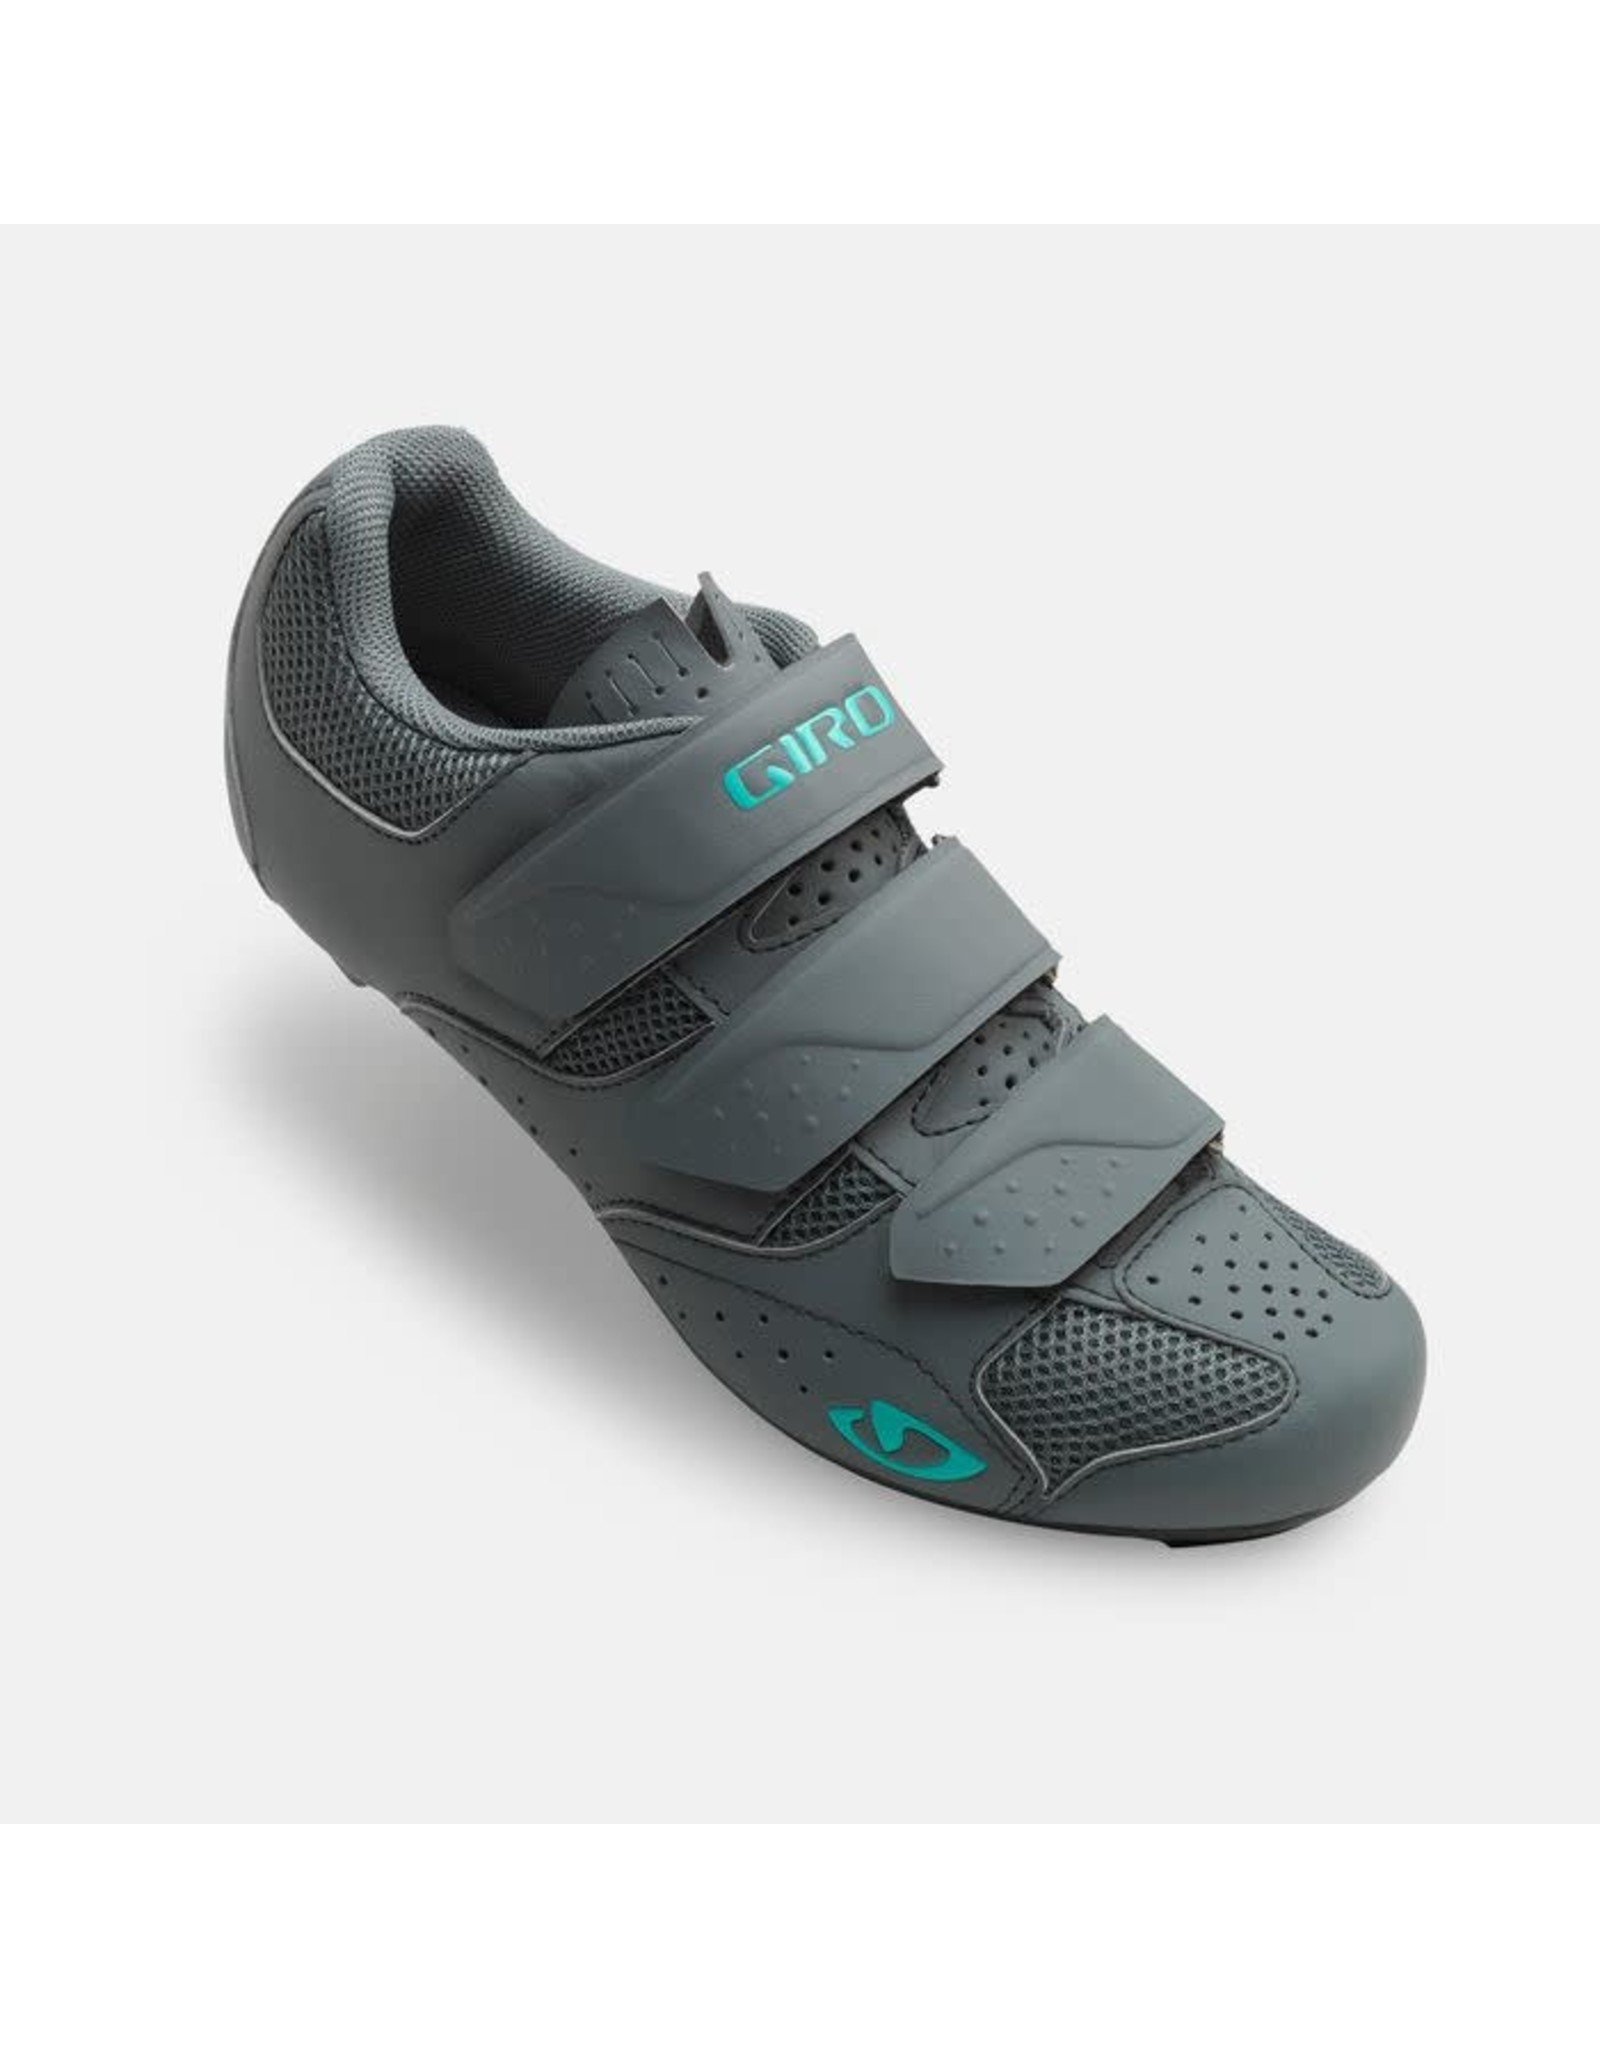 Giro Women's Giro Techne Road Shoe